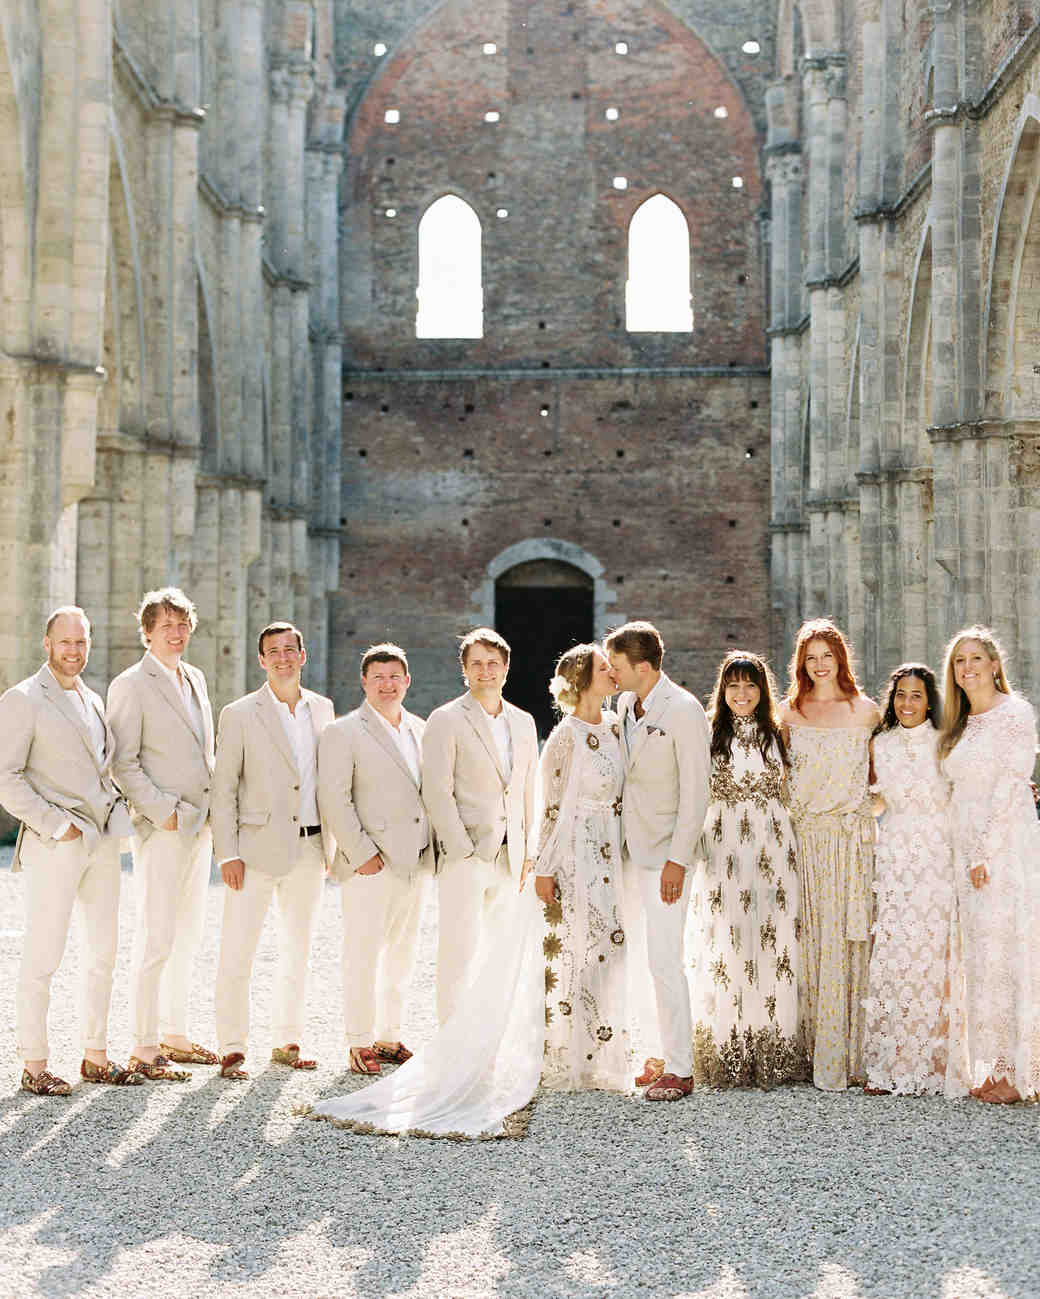 alexis zach wedding italy bridal party